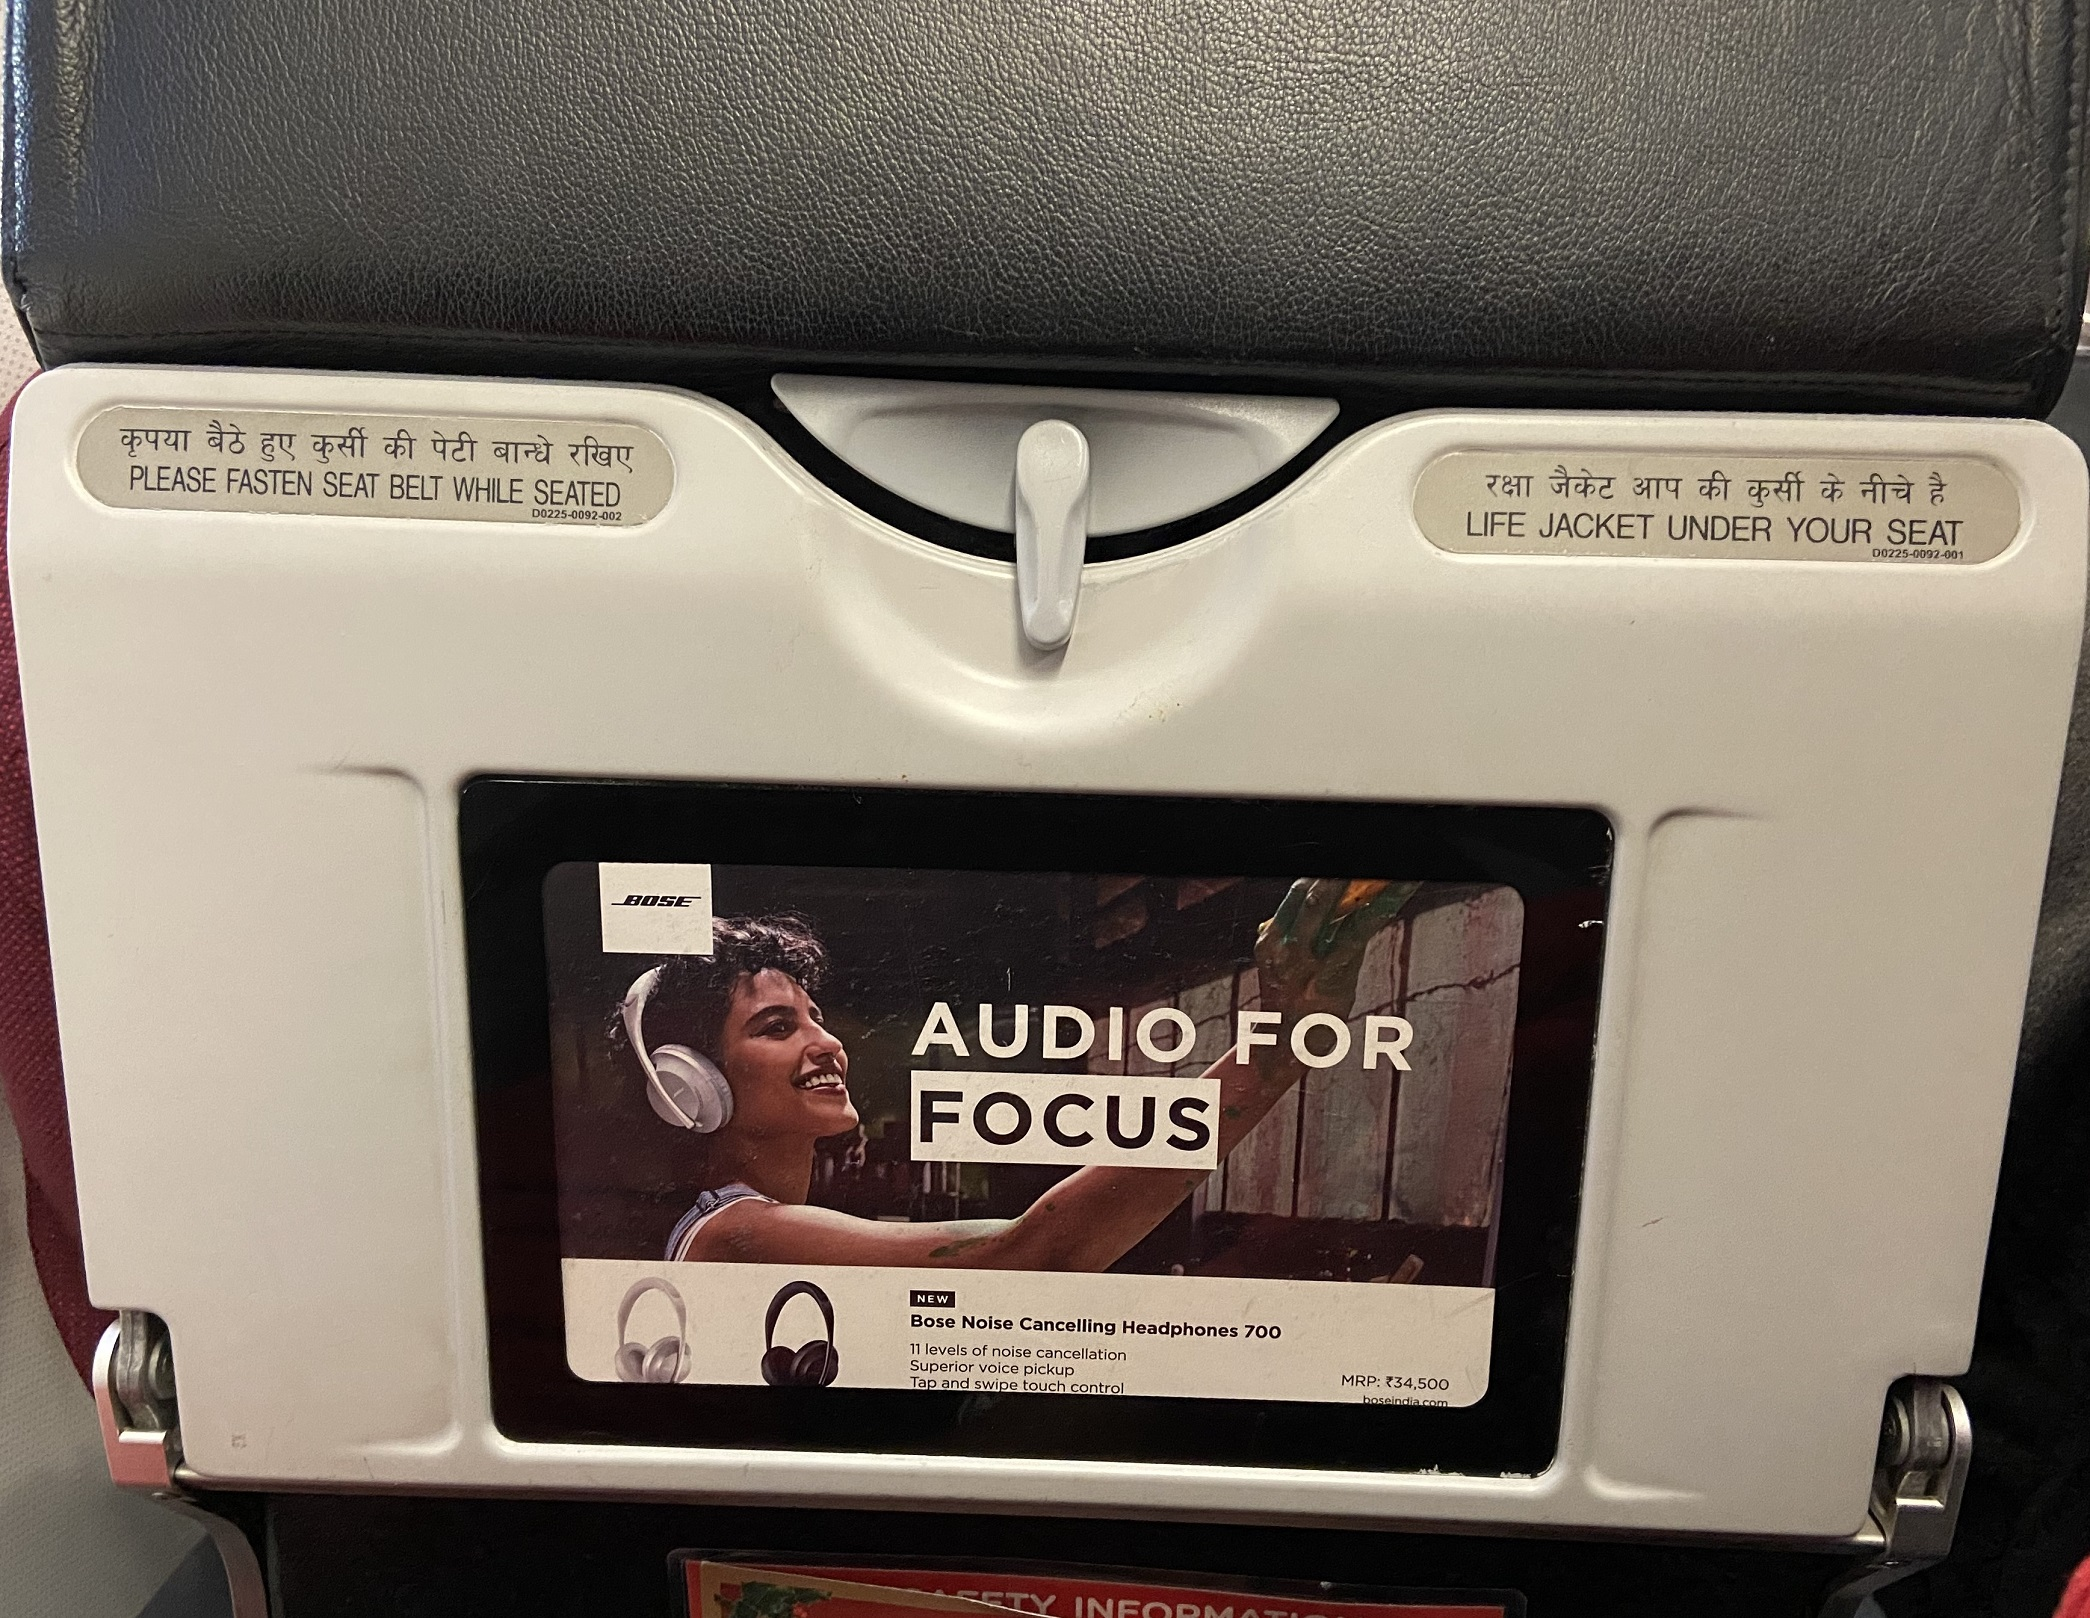 Air Asia India Airlines-Seat Back Branding-Option 1